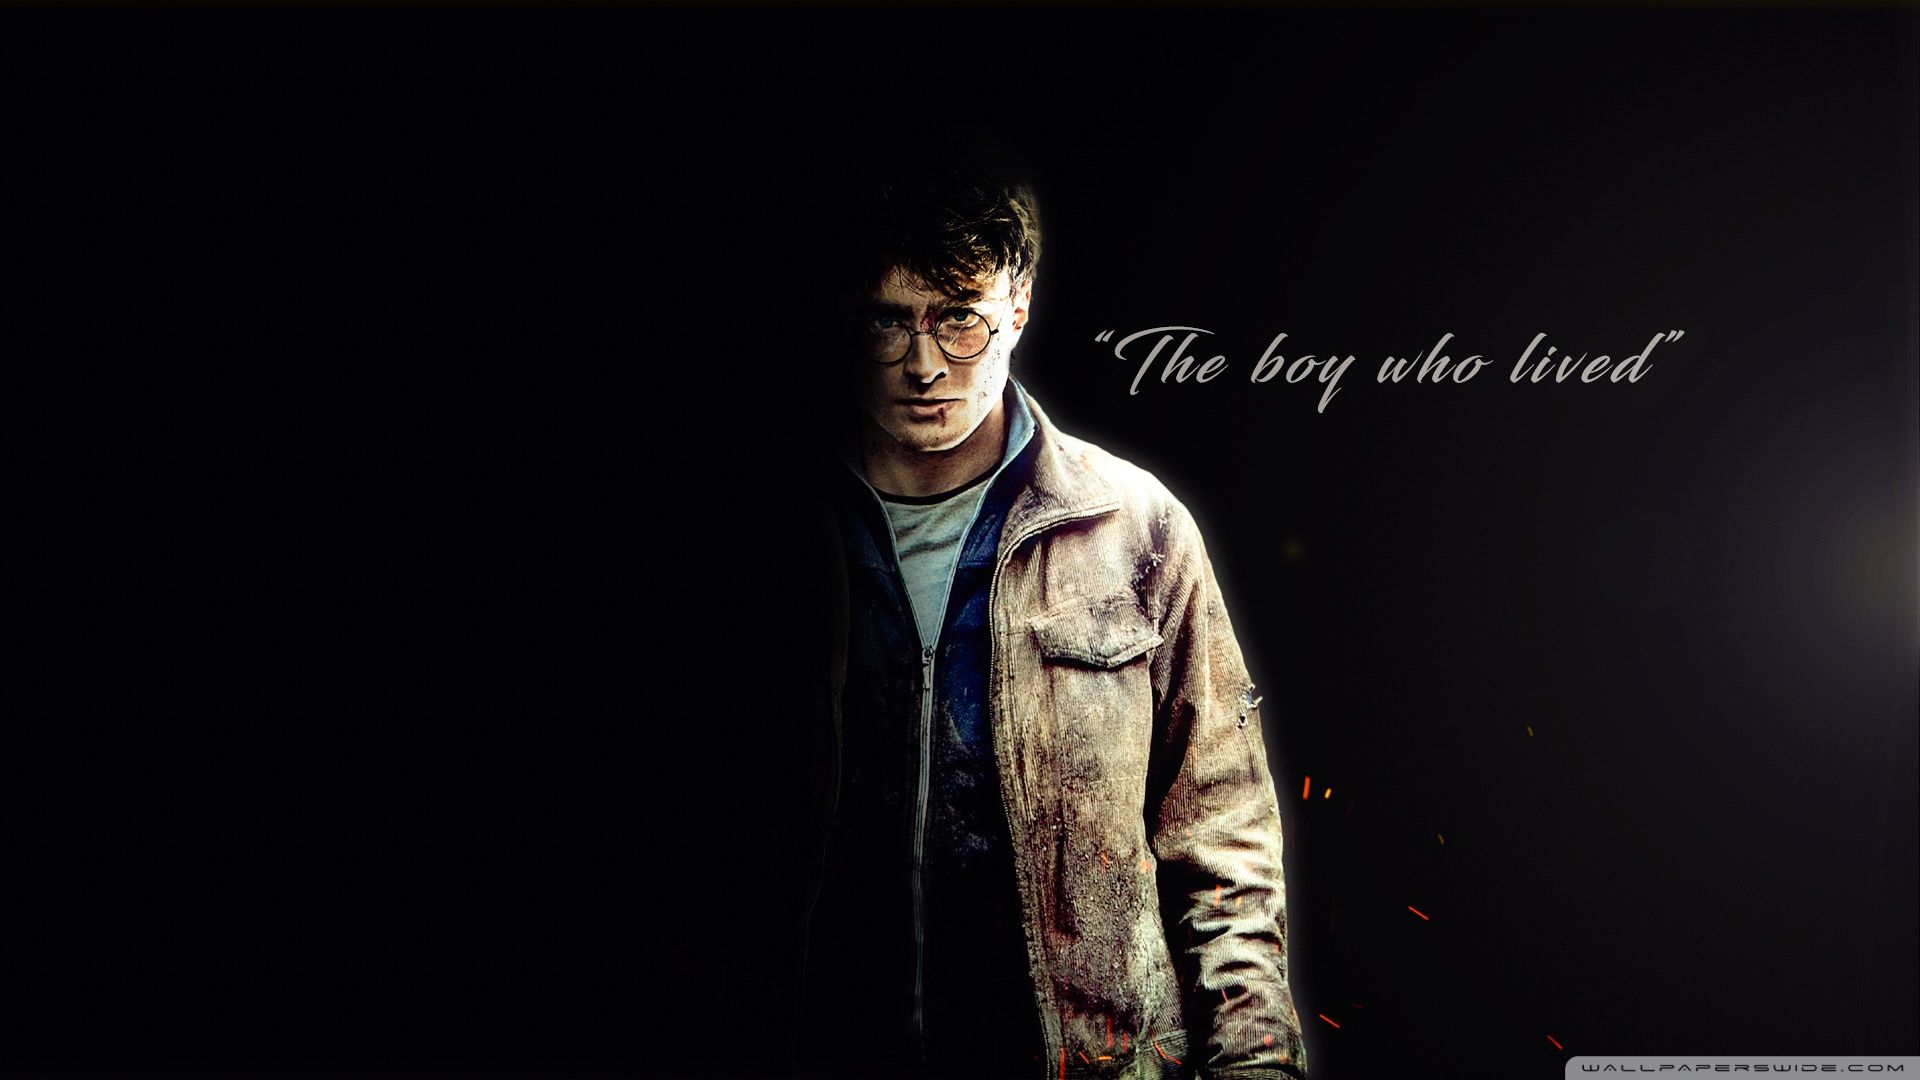 harry potter desktops